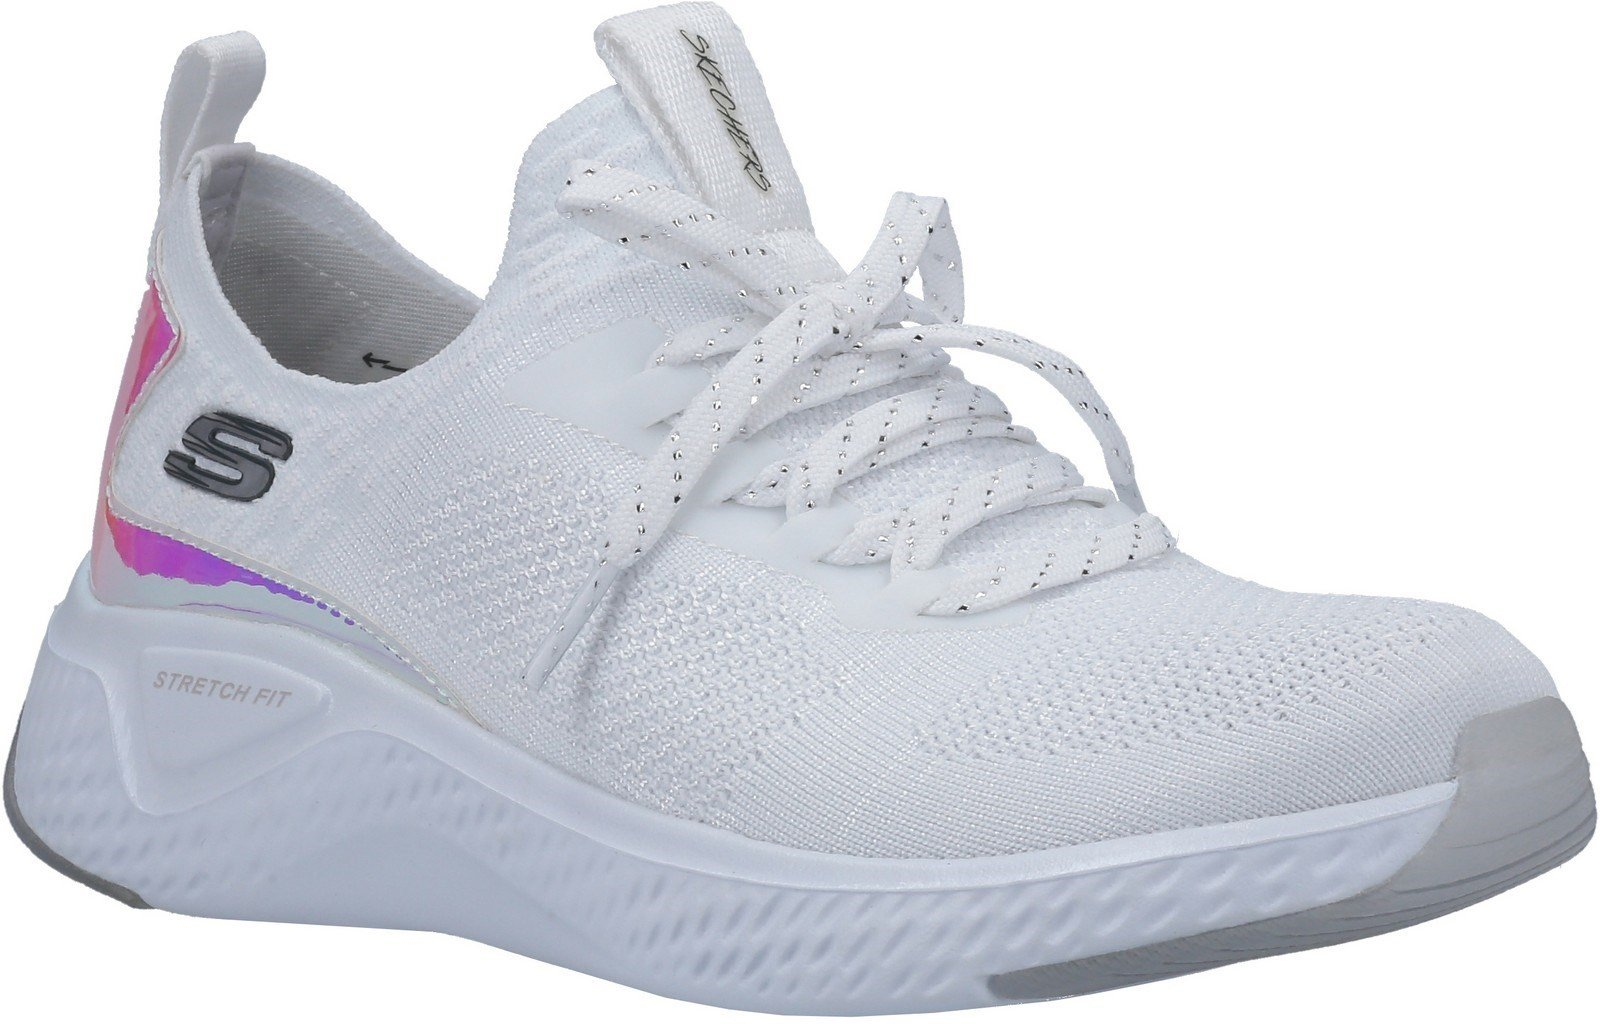 Skechers Women's Solar Fuse Gravity Experience Trainer Various Colours 30307 - White/Silver 3